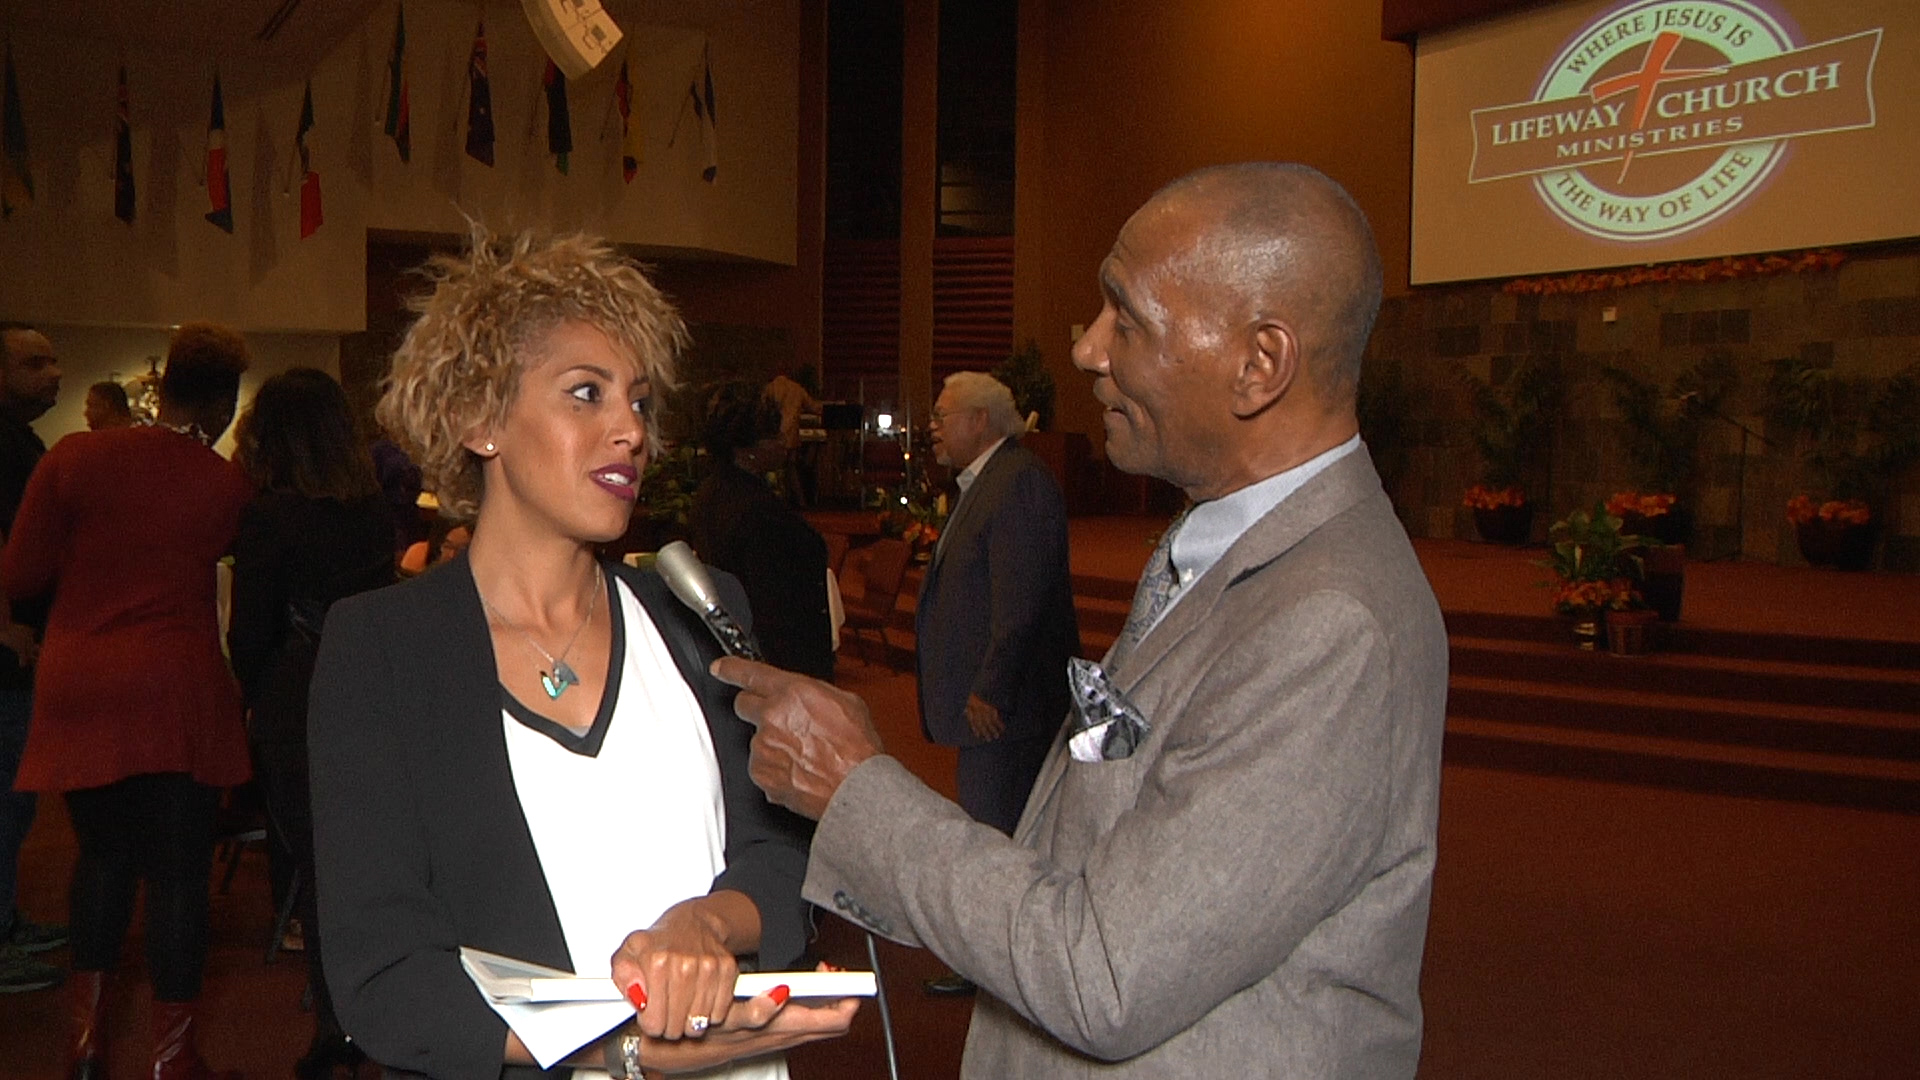 wallace-allen-interviews-serinity-martin-at-empowerment-event-on-11-4-2016